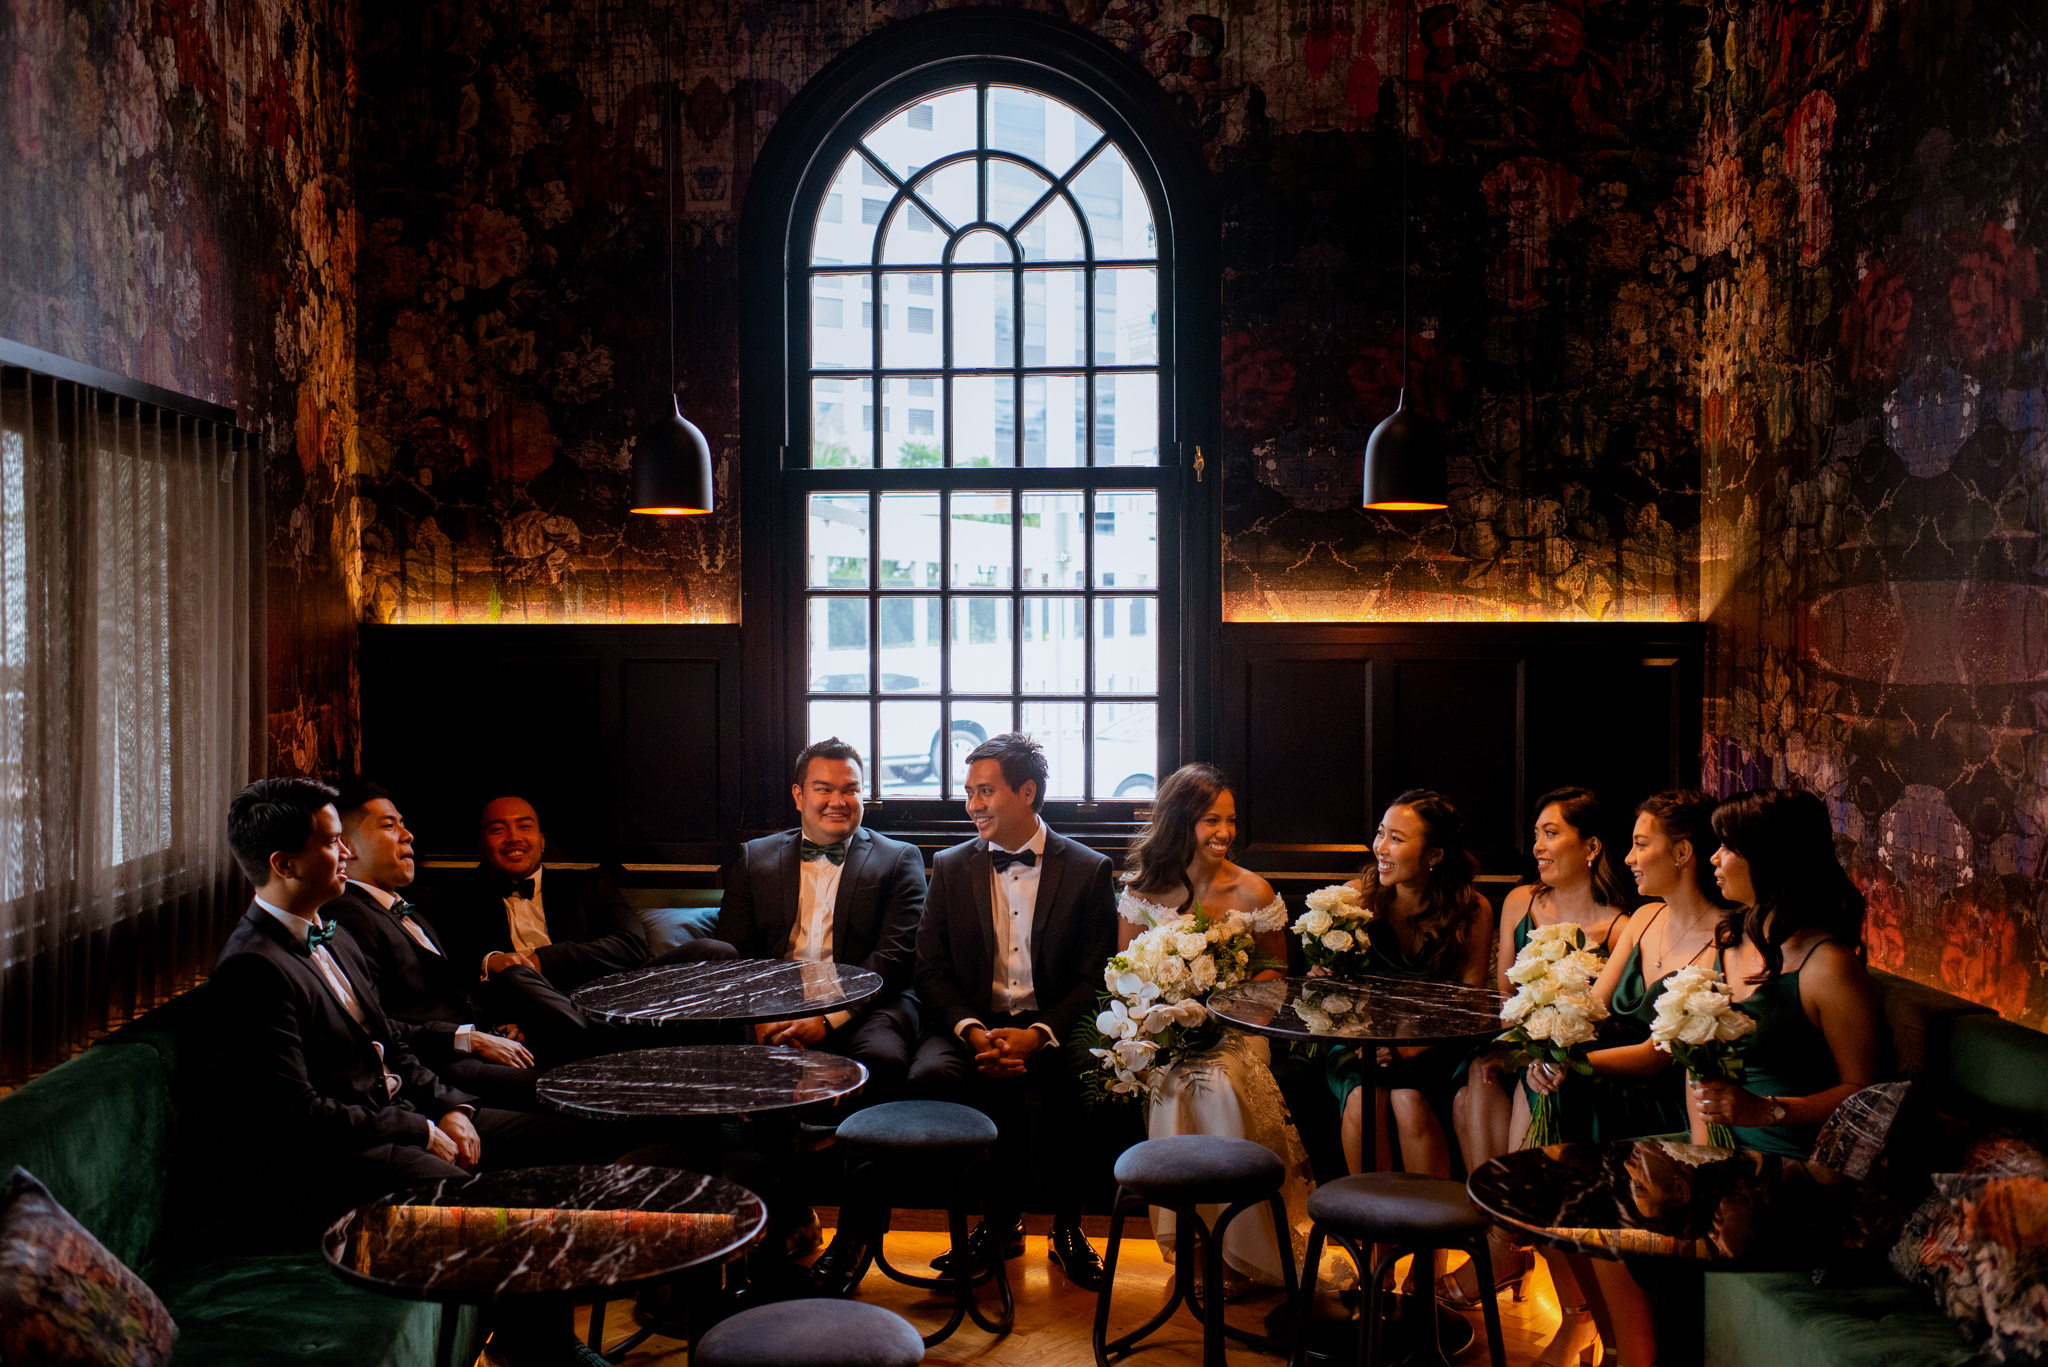 Bridal party casually sits in warmly lit vintage style bar